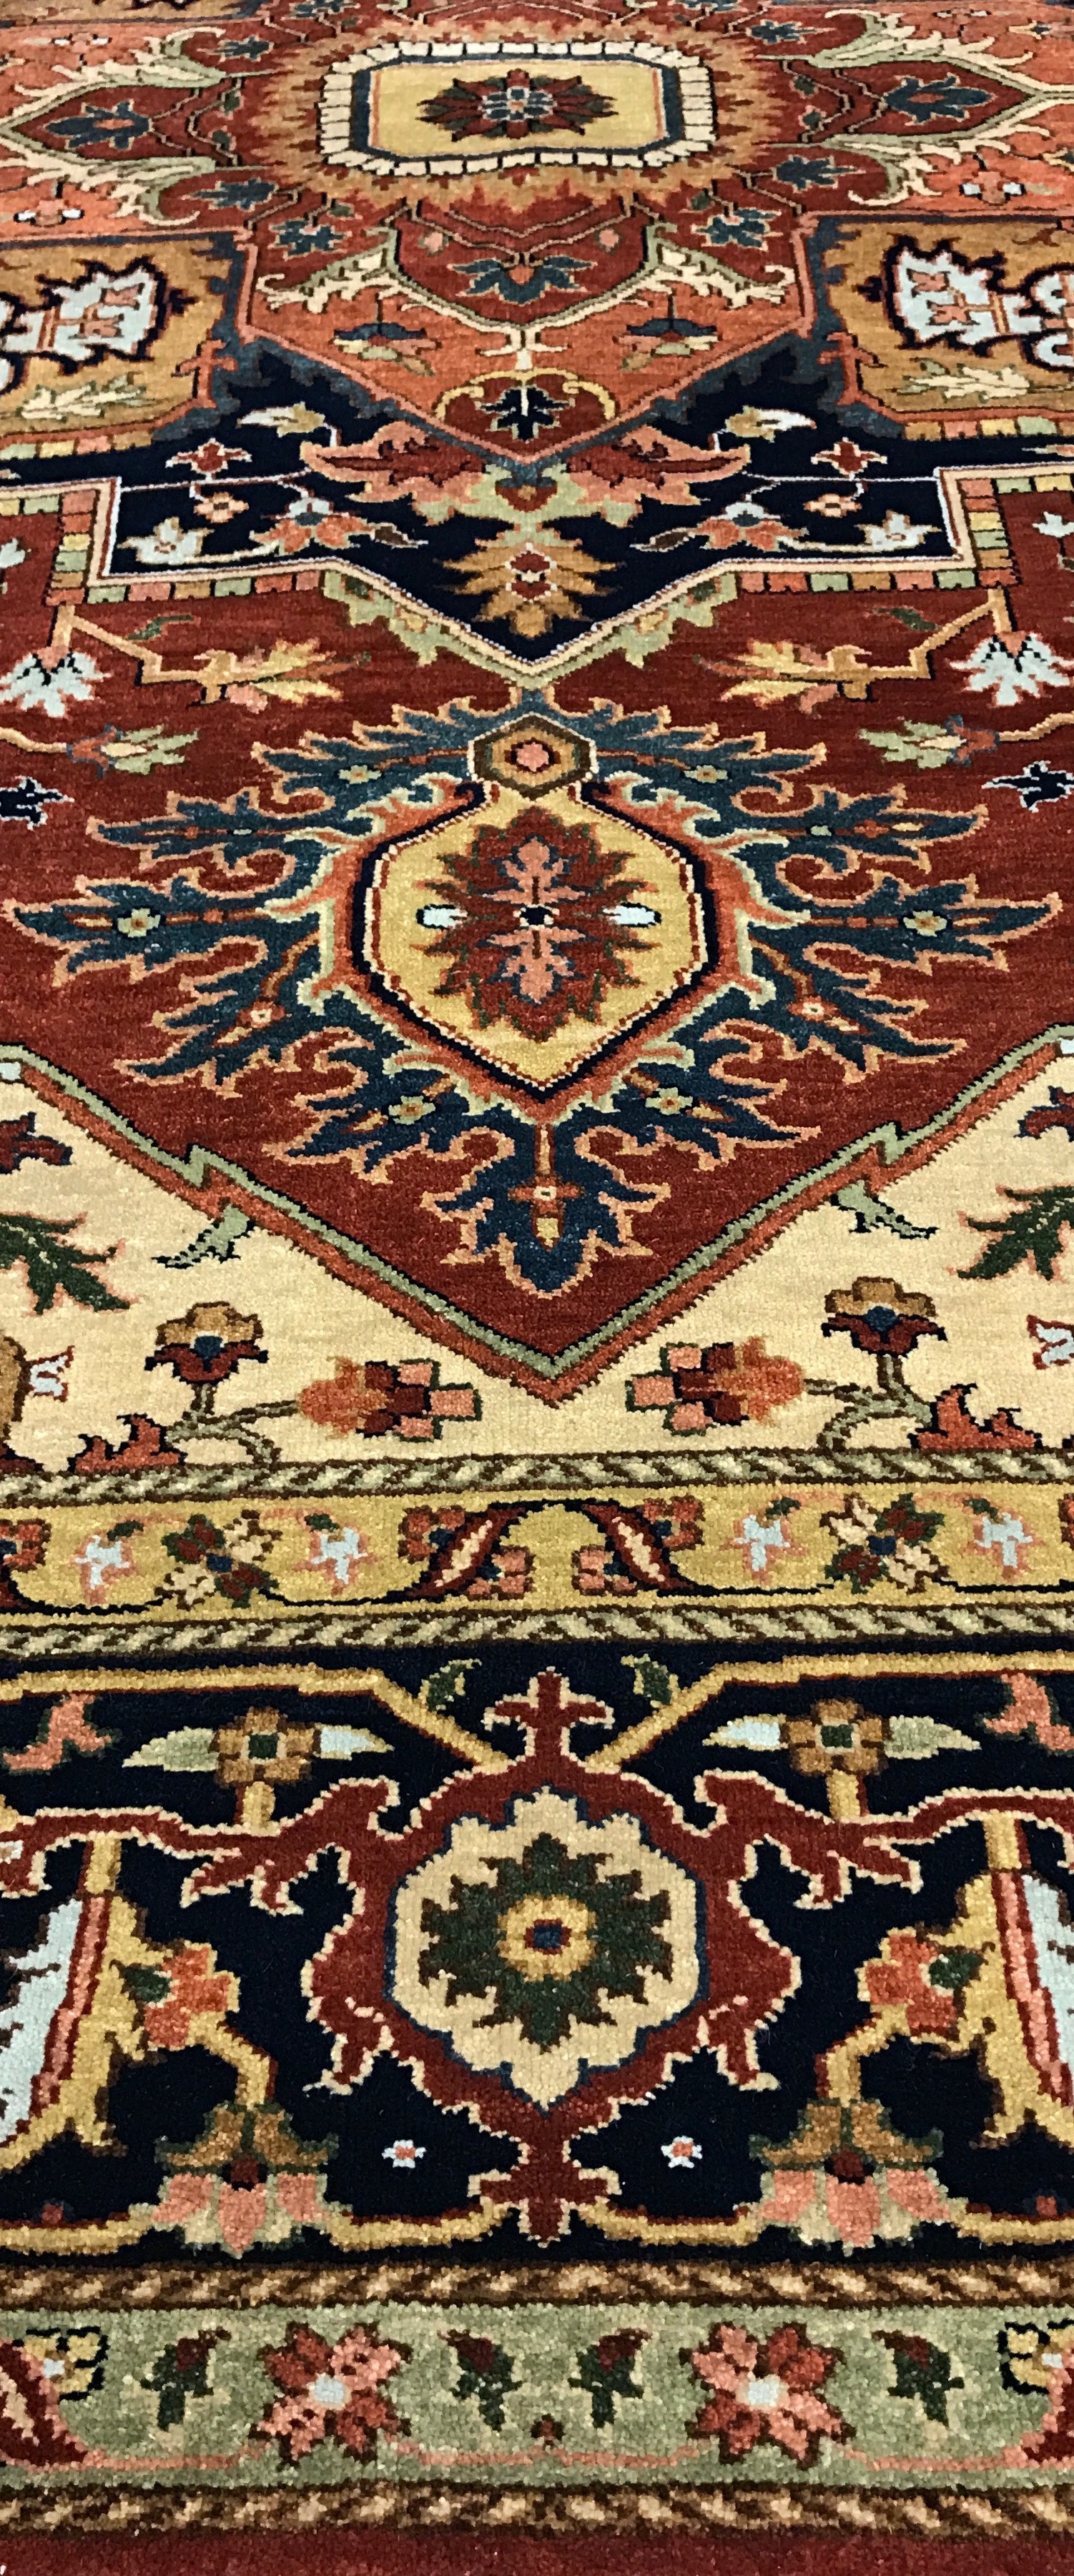 See Why Pv Rugs Is Known For Its